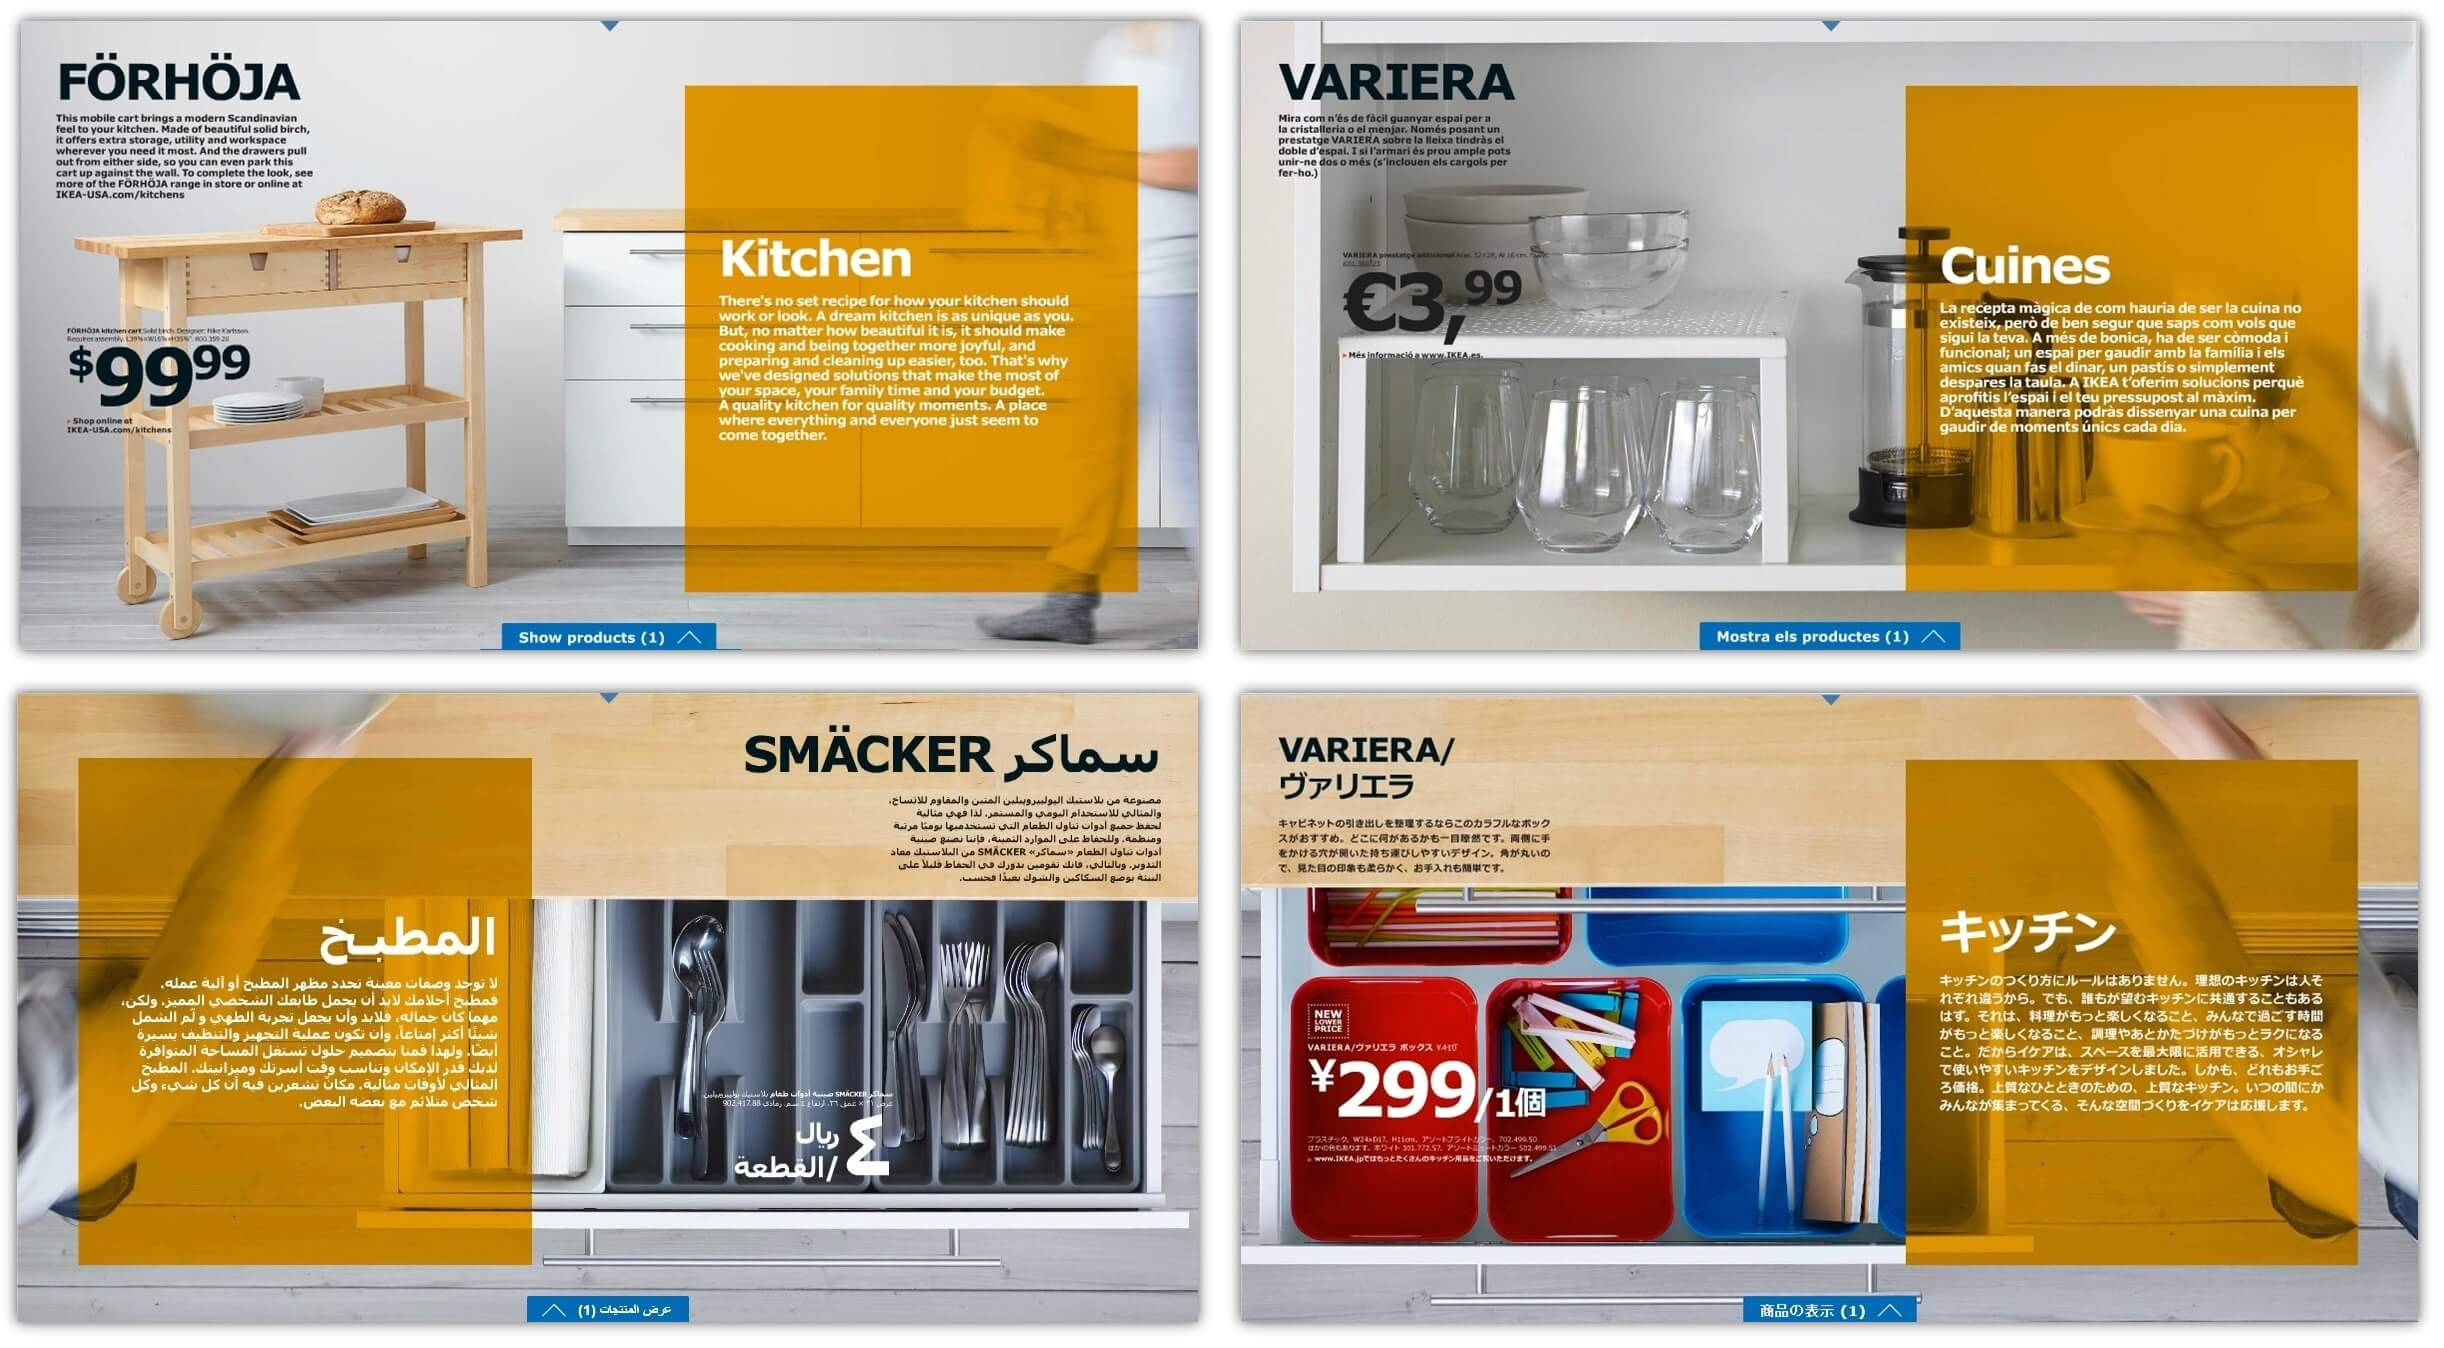 ikea-kitchen-localized